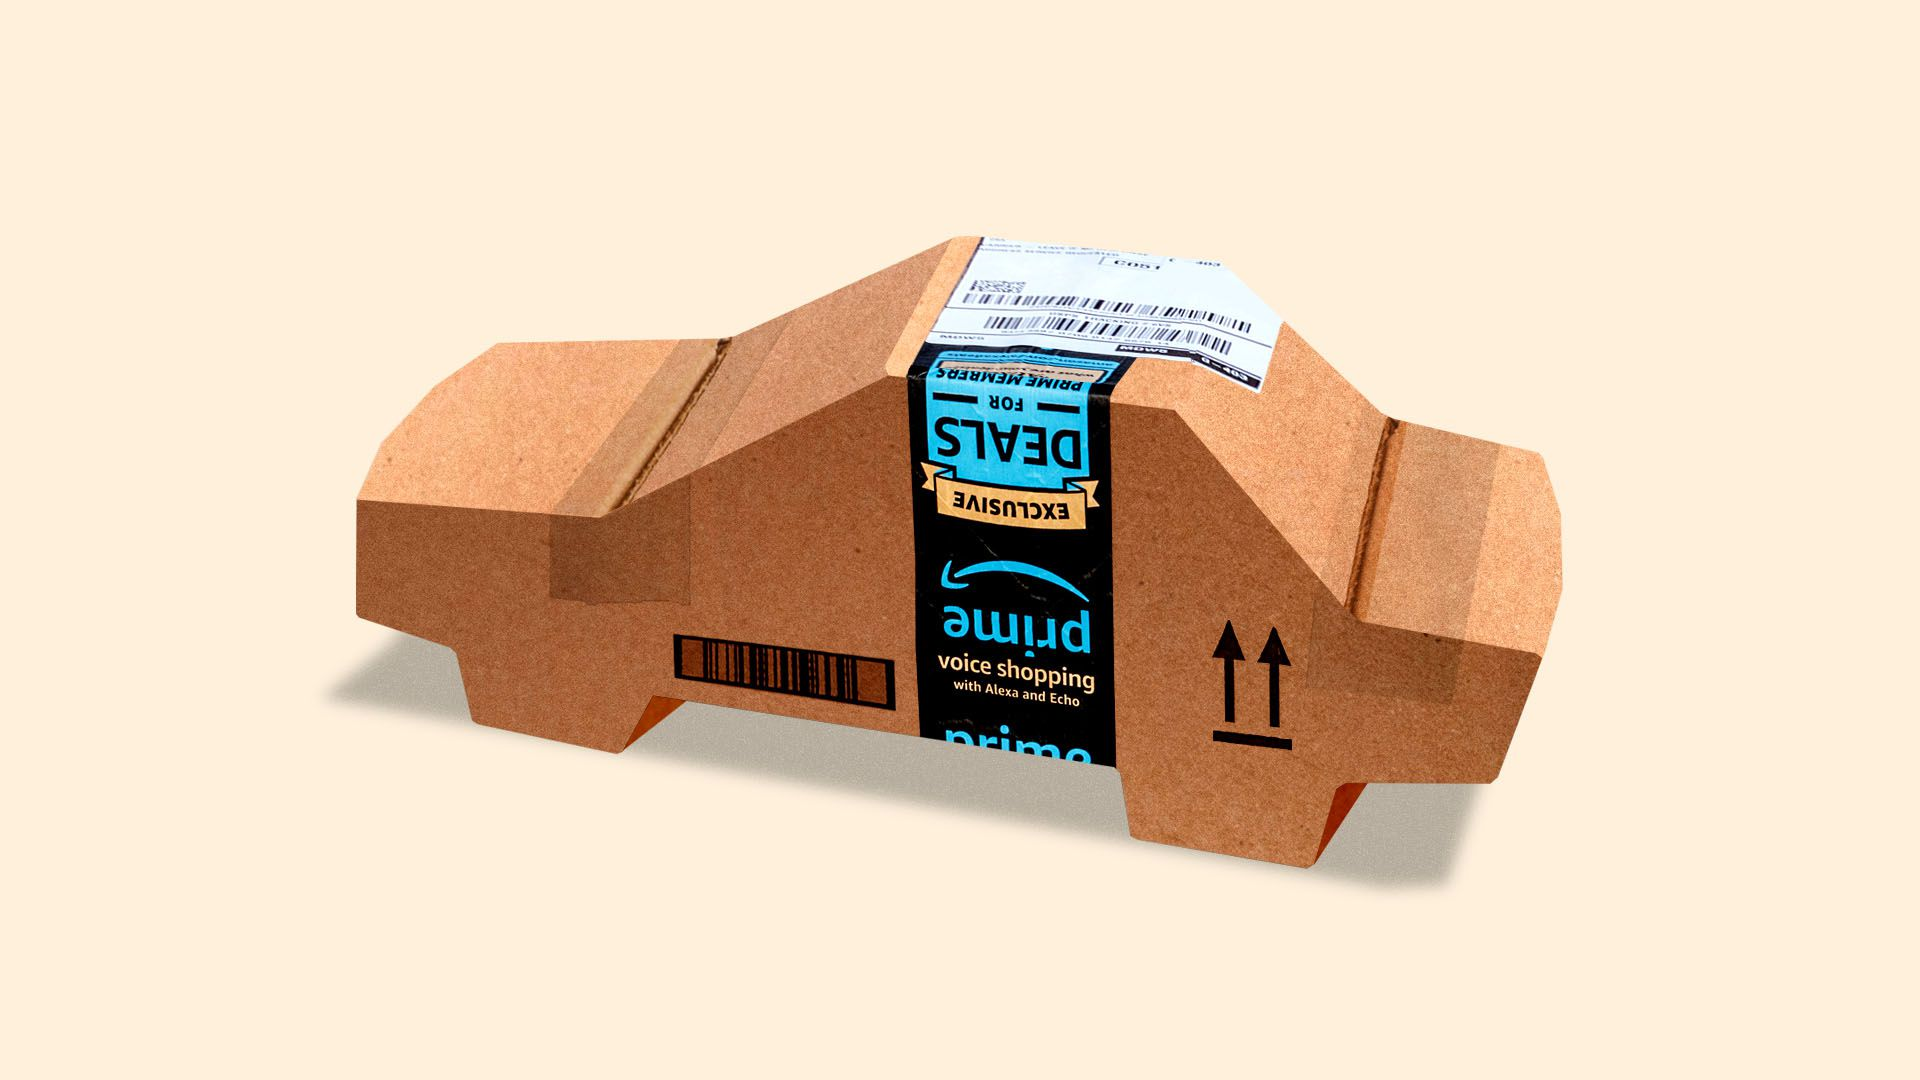 In this illustration, a cardboard Amazon delivery box is fashioned into the shape of a car.